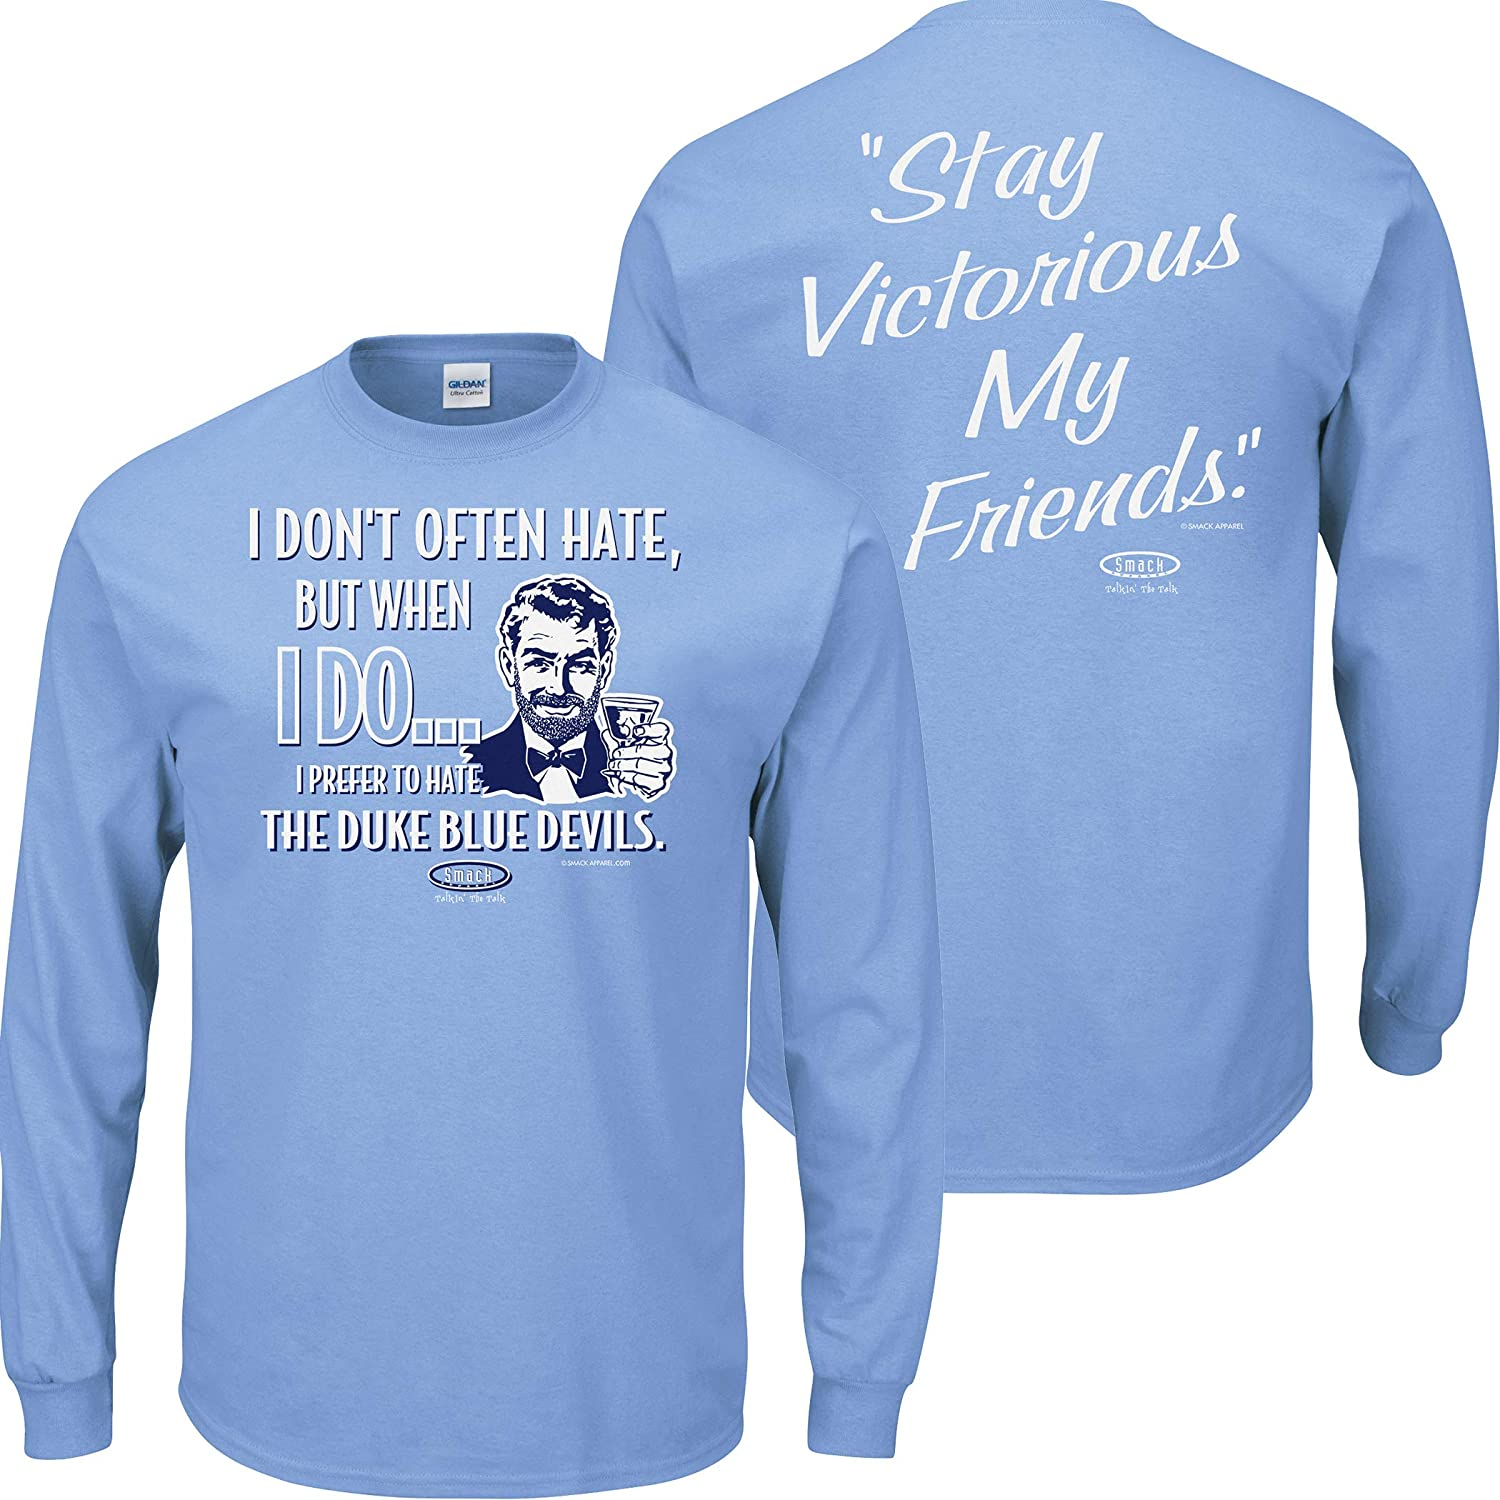 Sm-5X Anti-Duke Smack Apparel North Carolina Basketball Fans Stay Victorious. Carolina Blue T-Shirt